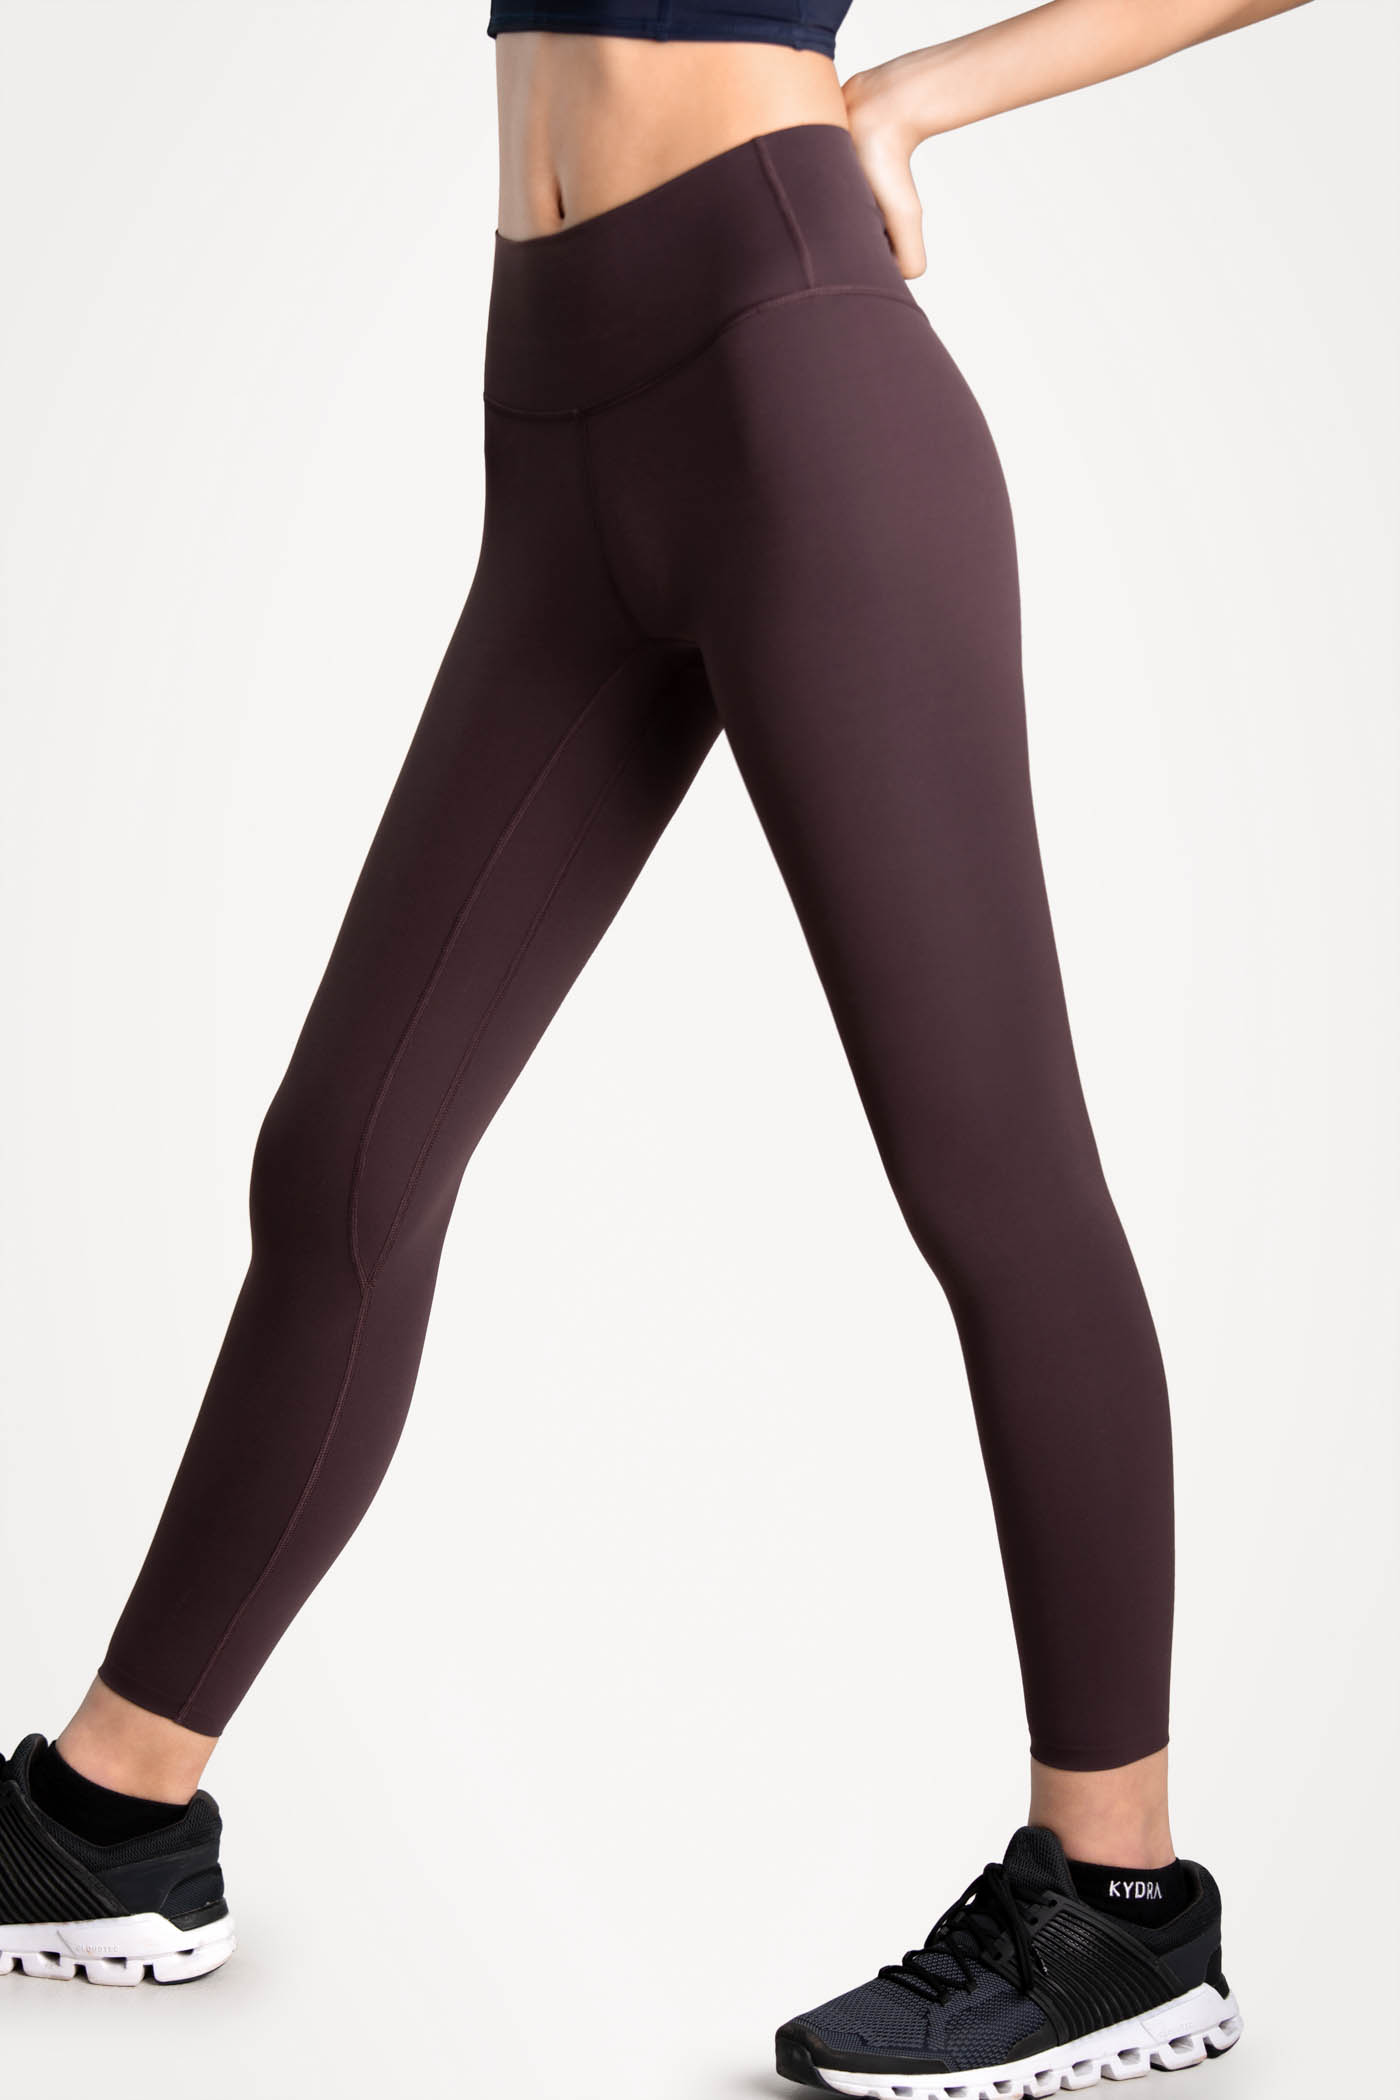 Kydra Kyro Leggings